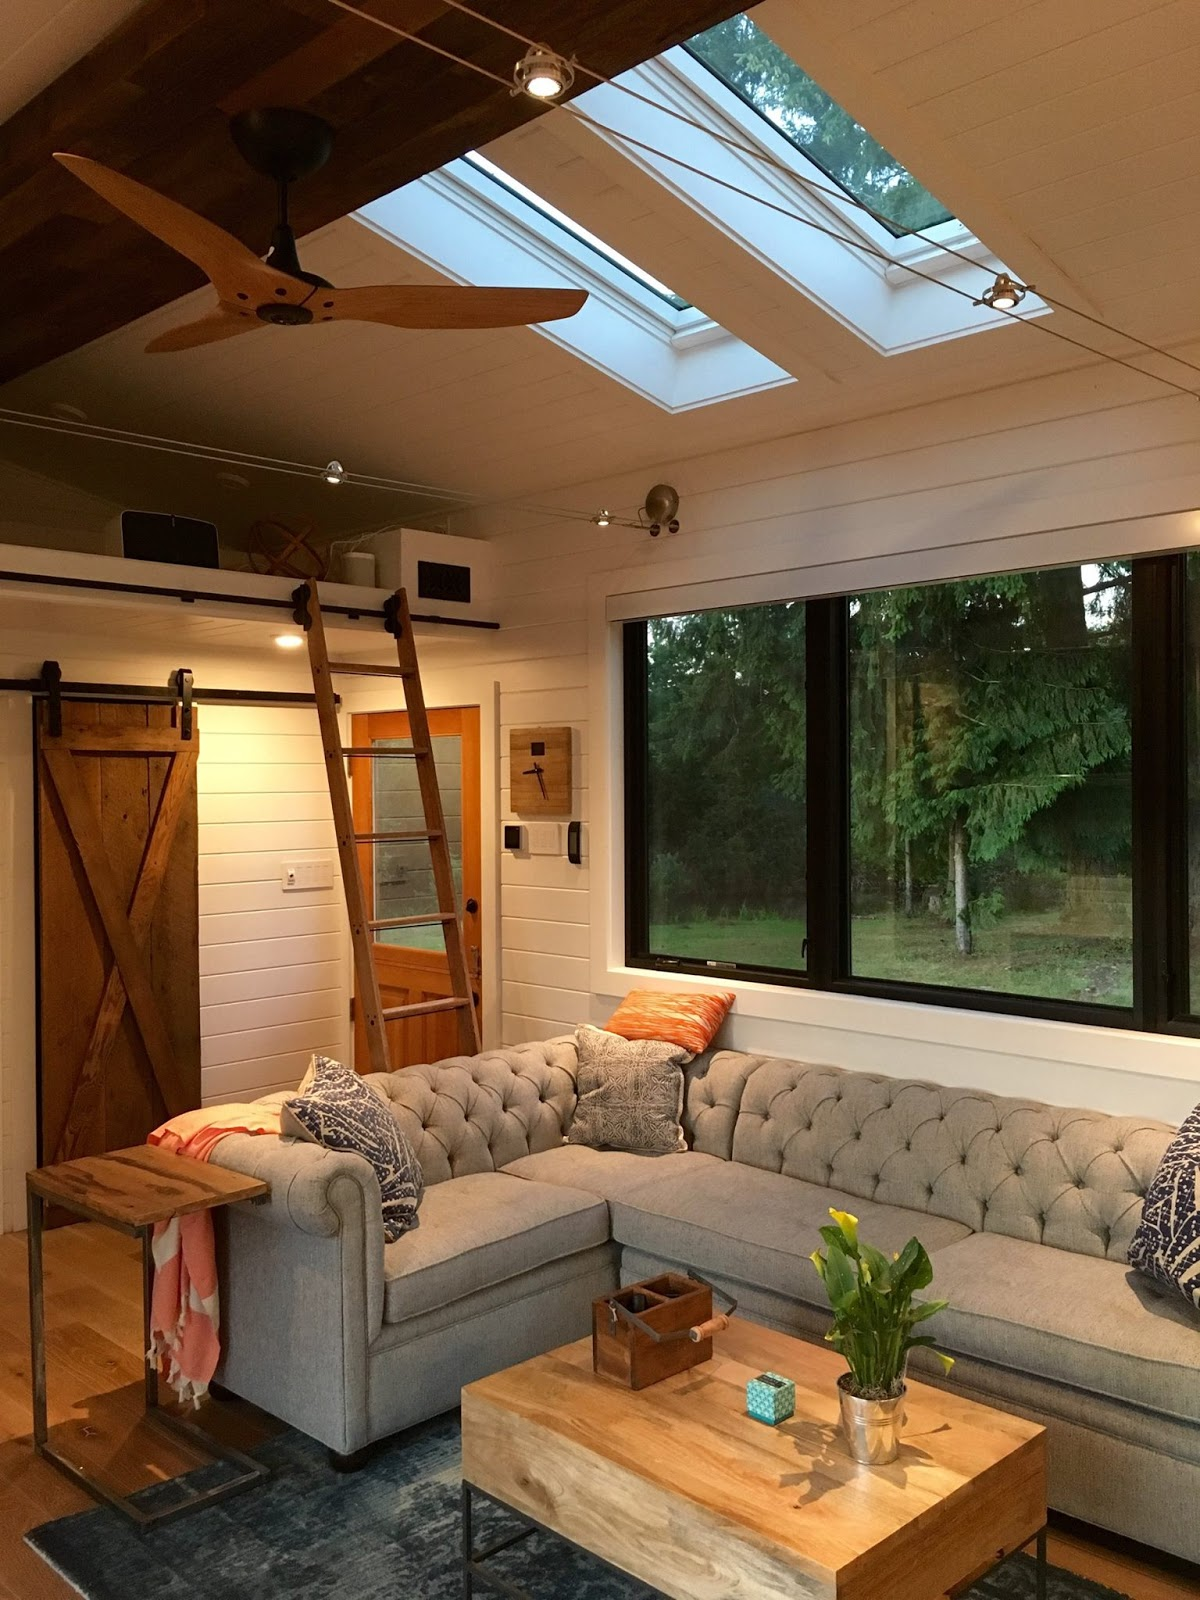 The hawaii house by tiny heirloom tiny house town for Small interior house designs photos